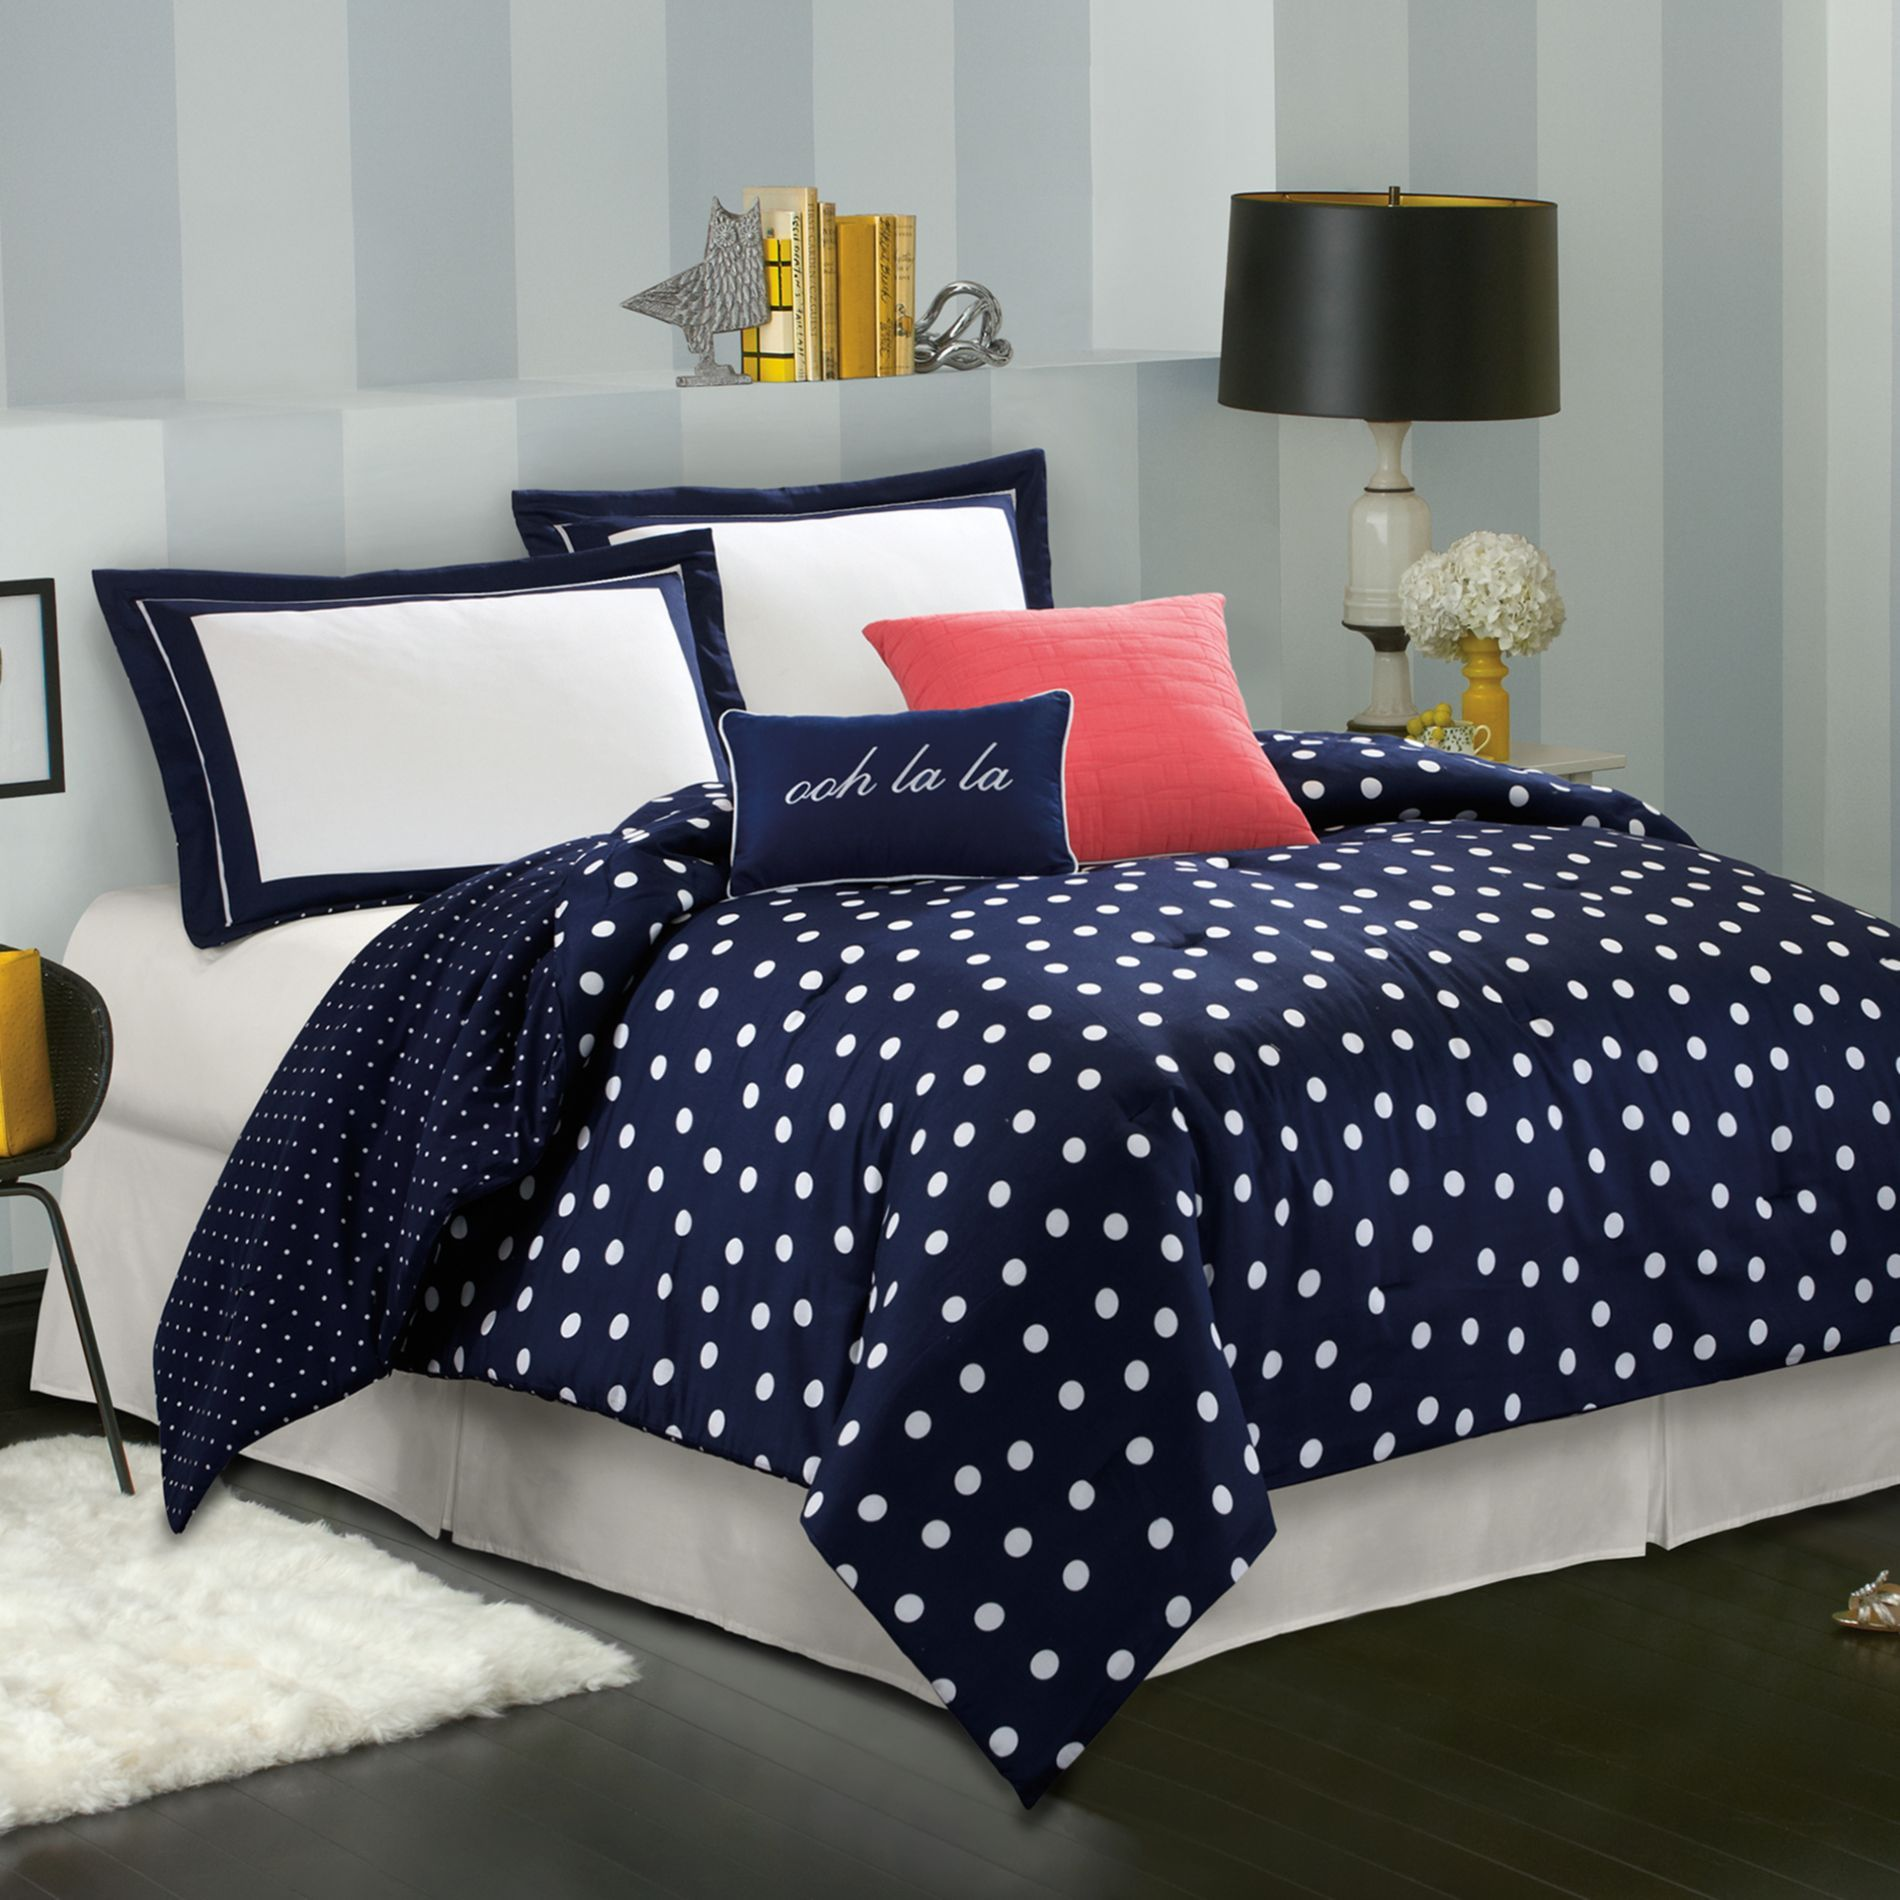 Kate Spade New York Little Star King Comforter Set